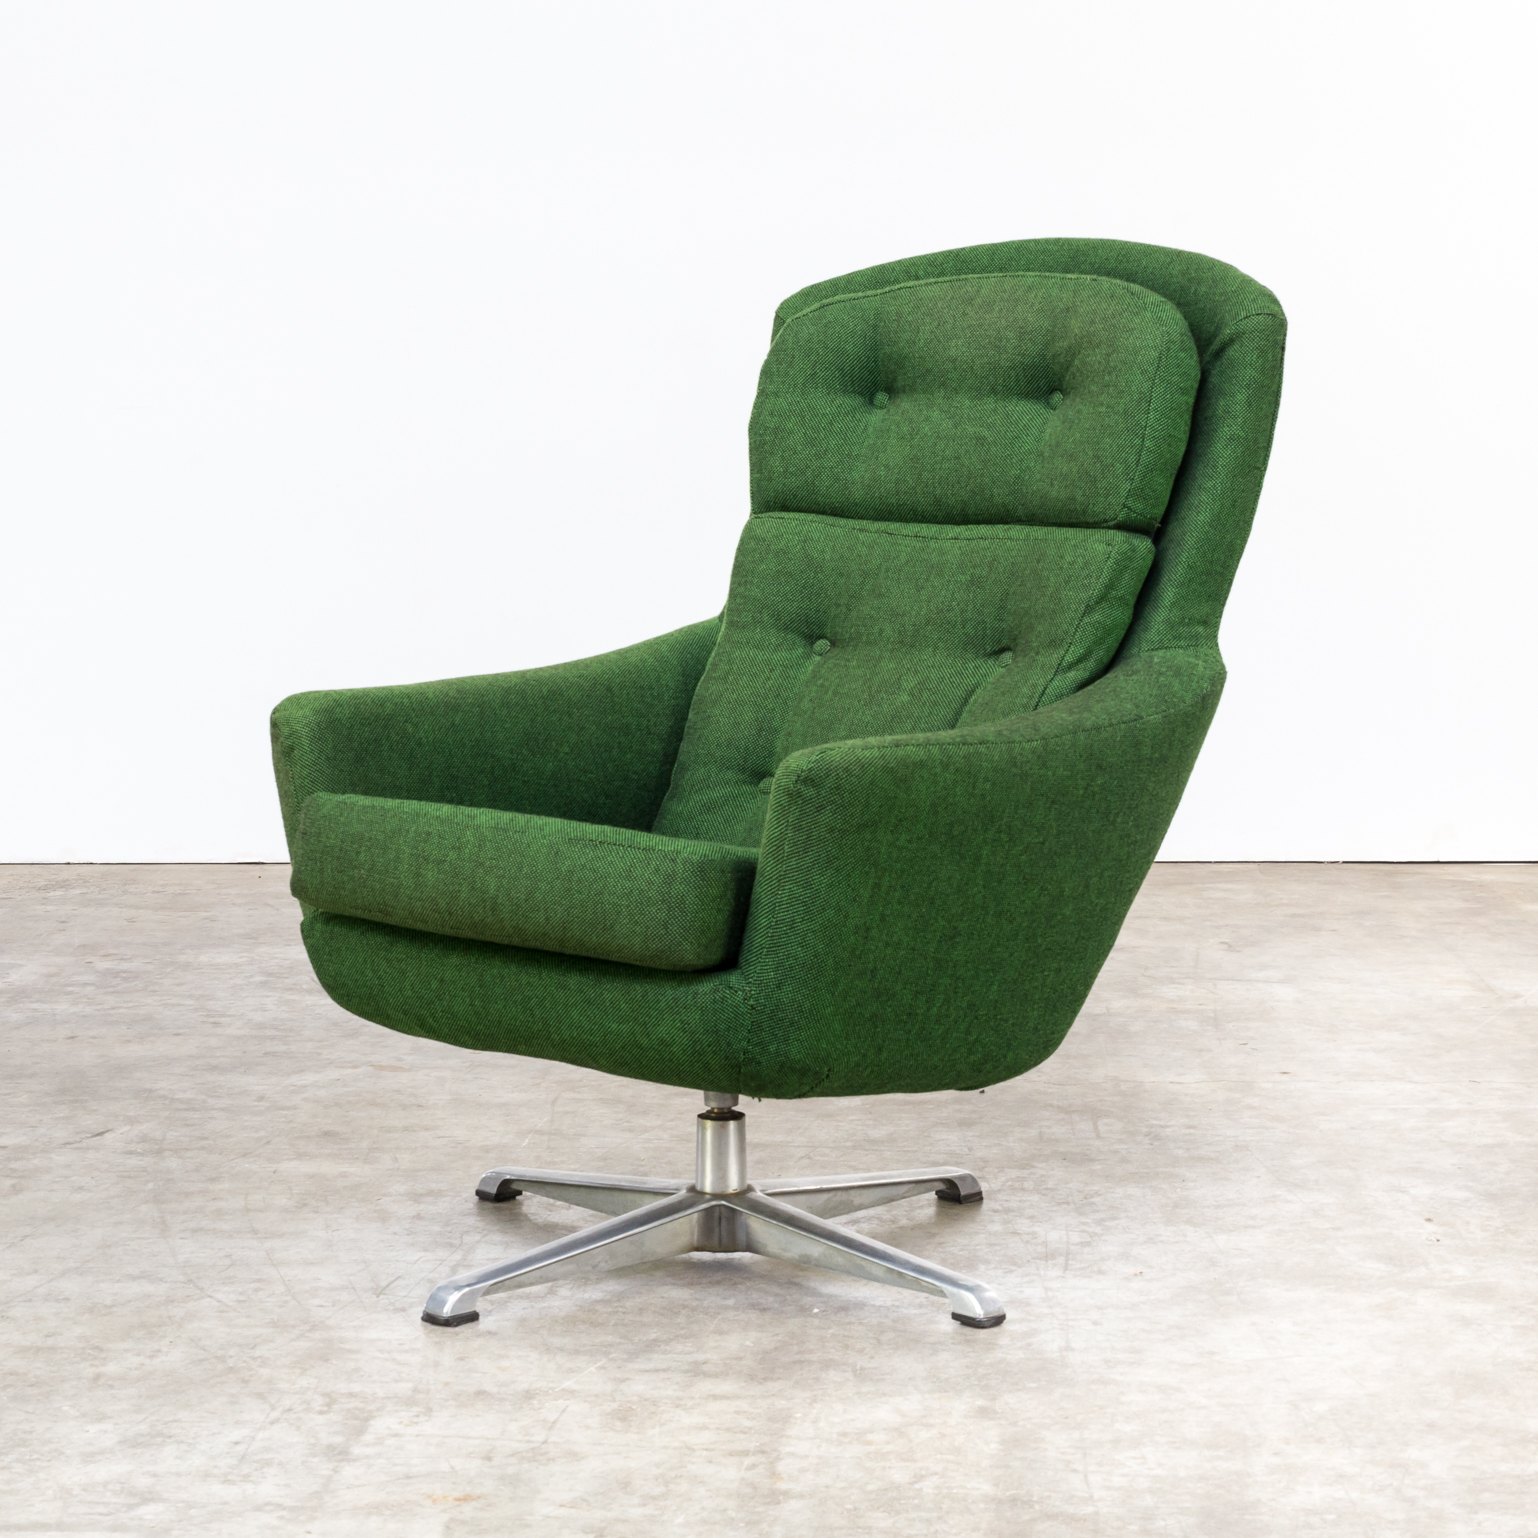 70s re upholstered swivel fauteuil barbmama for Kopie eames chair